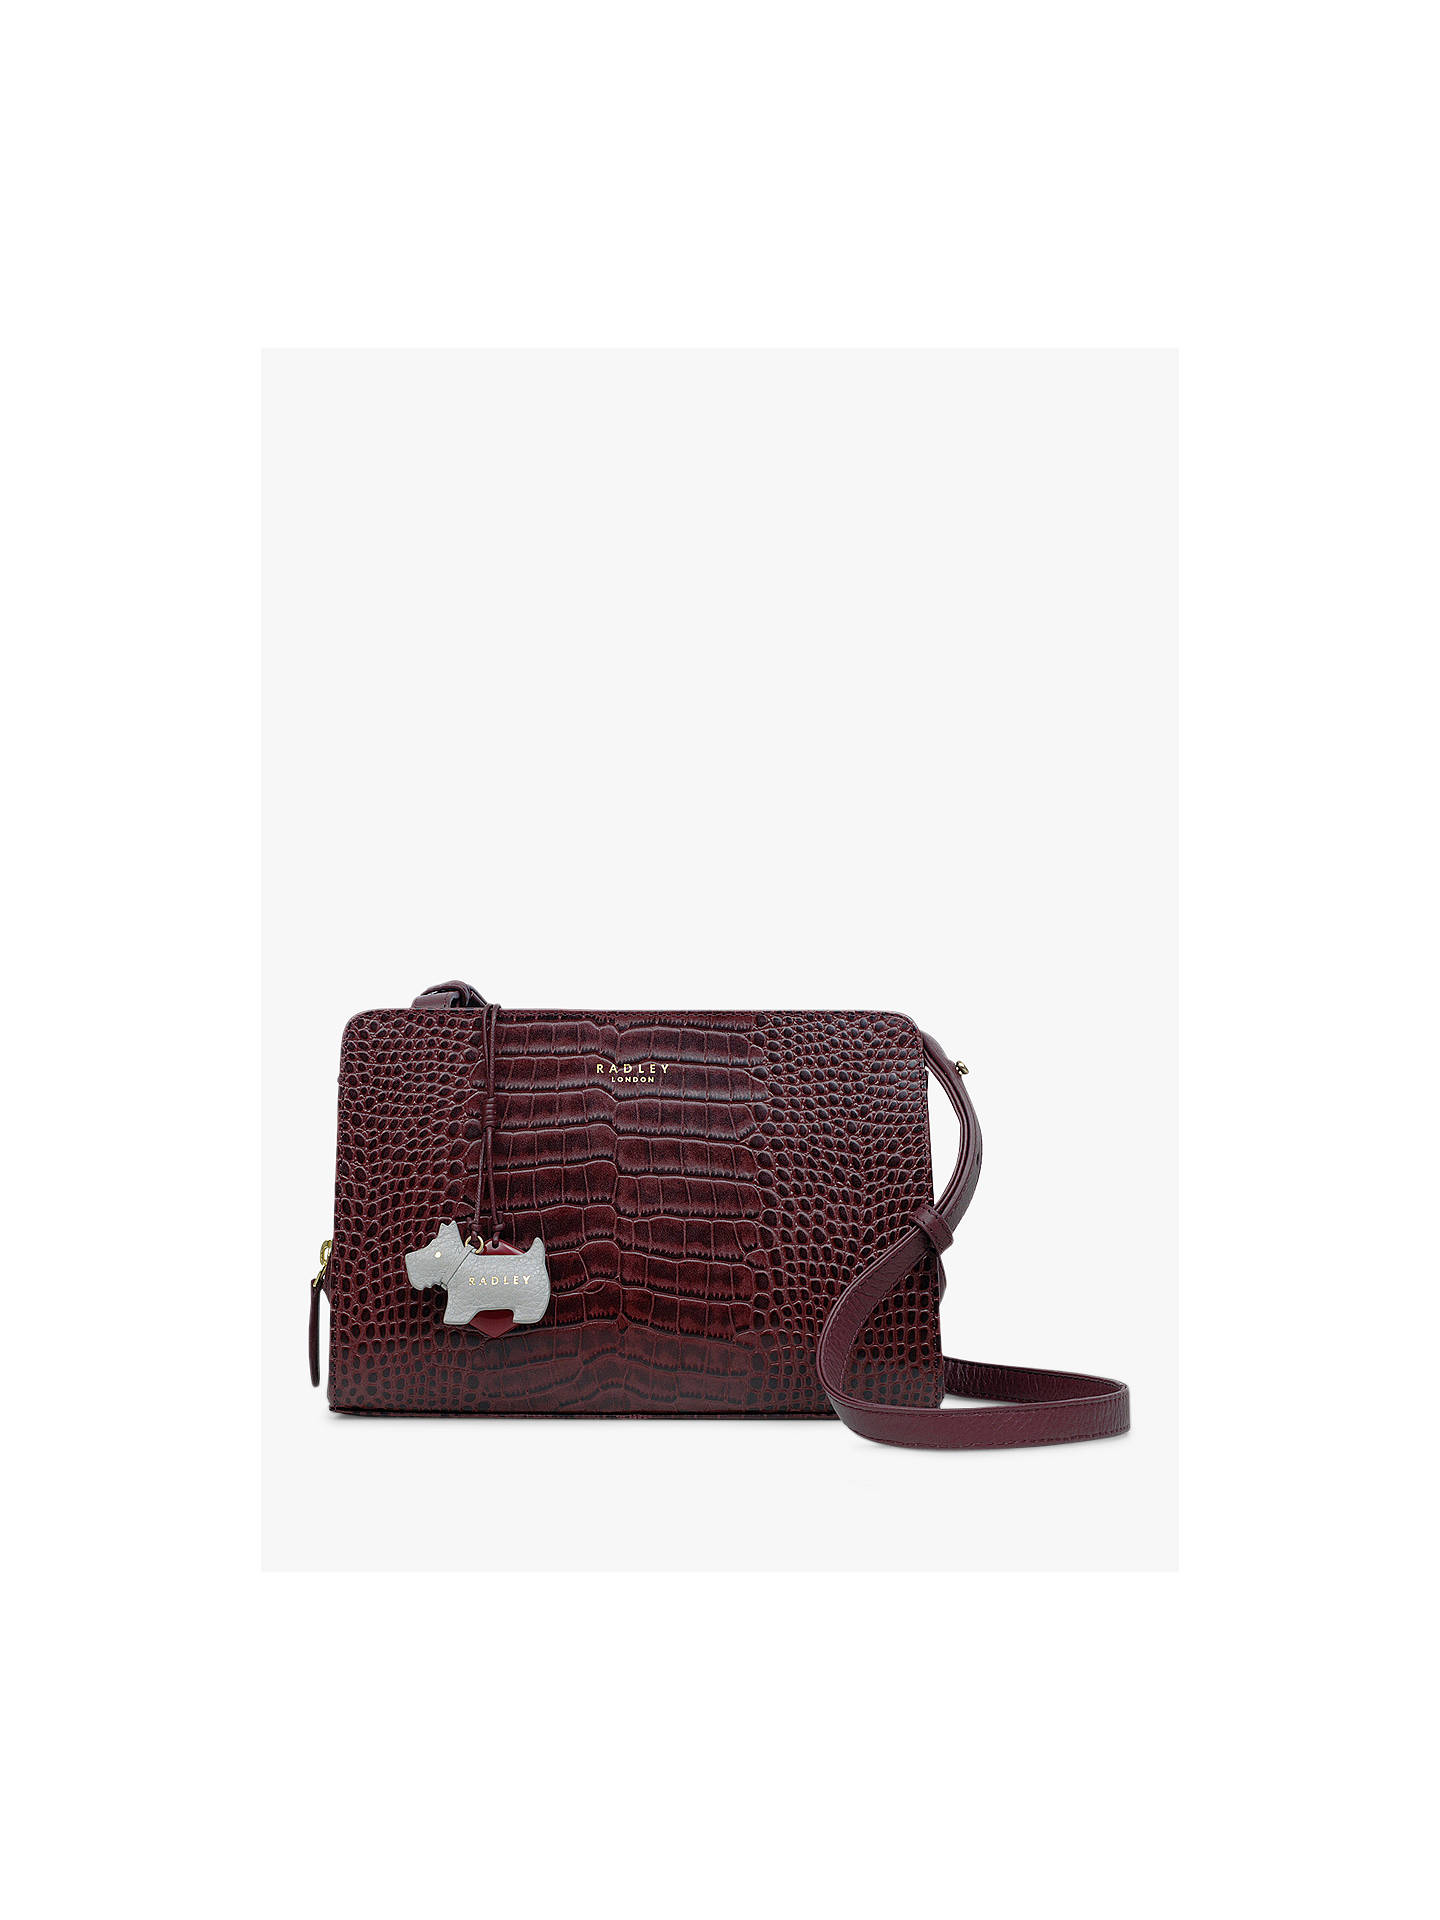 ce9d672ed Buy Radley Liverpool Street Leather Medium Cross Body Bag, Red Online at  johnlewis.com ...